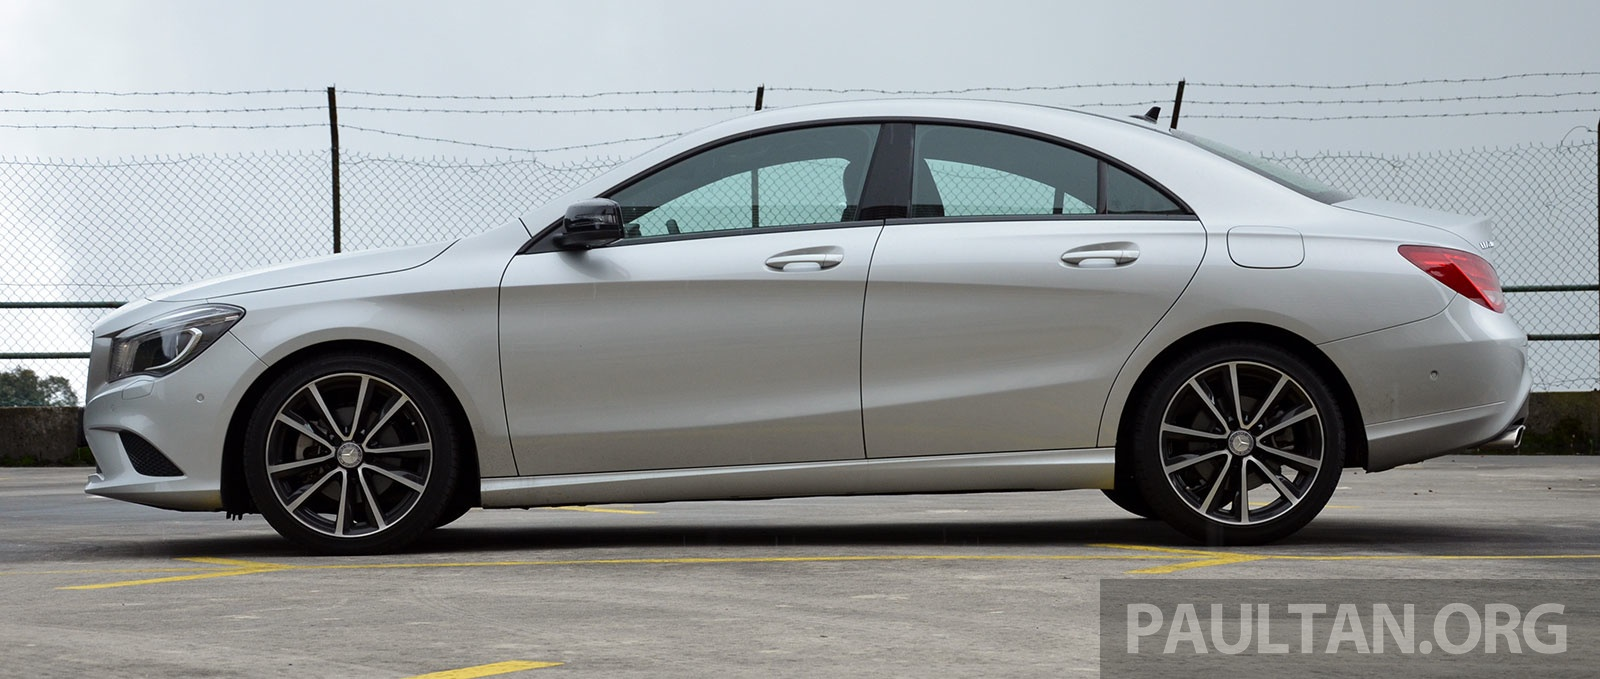 Mercedes Benz Cla >> DRIVEN: Mercedes-Benz CLA 200 – of flash and flaws Image 244367